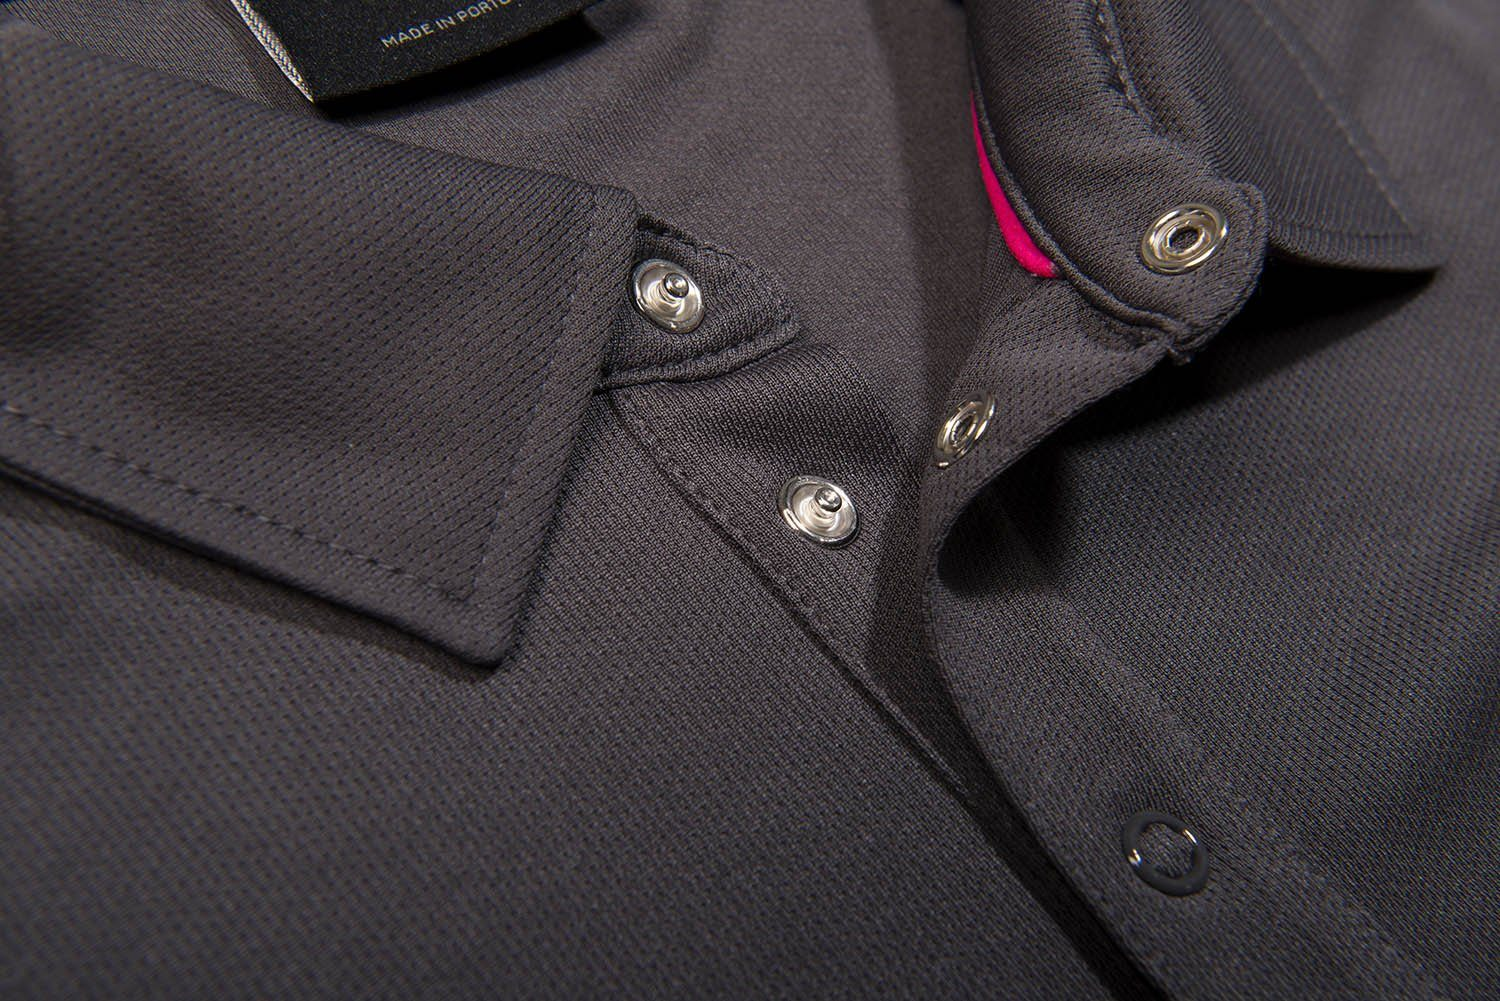 Galvin Green Mannix V8+ Polo Shirt in Iron Grey / Cerise